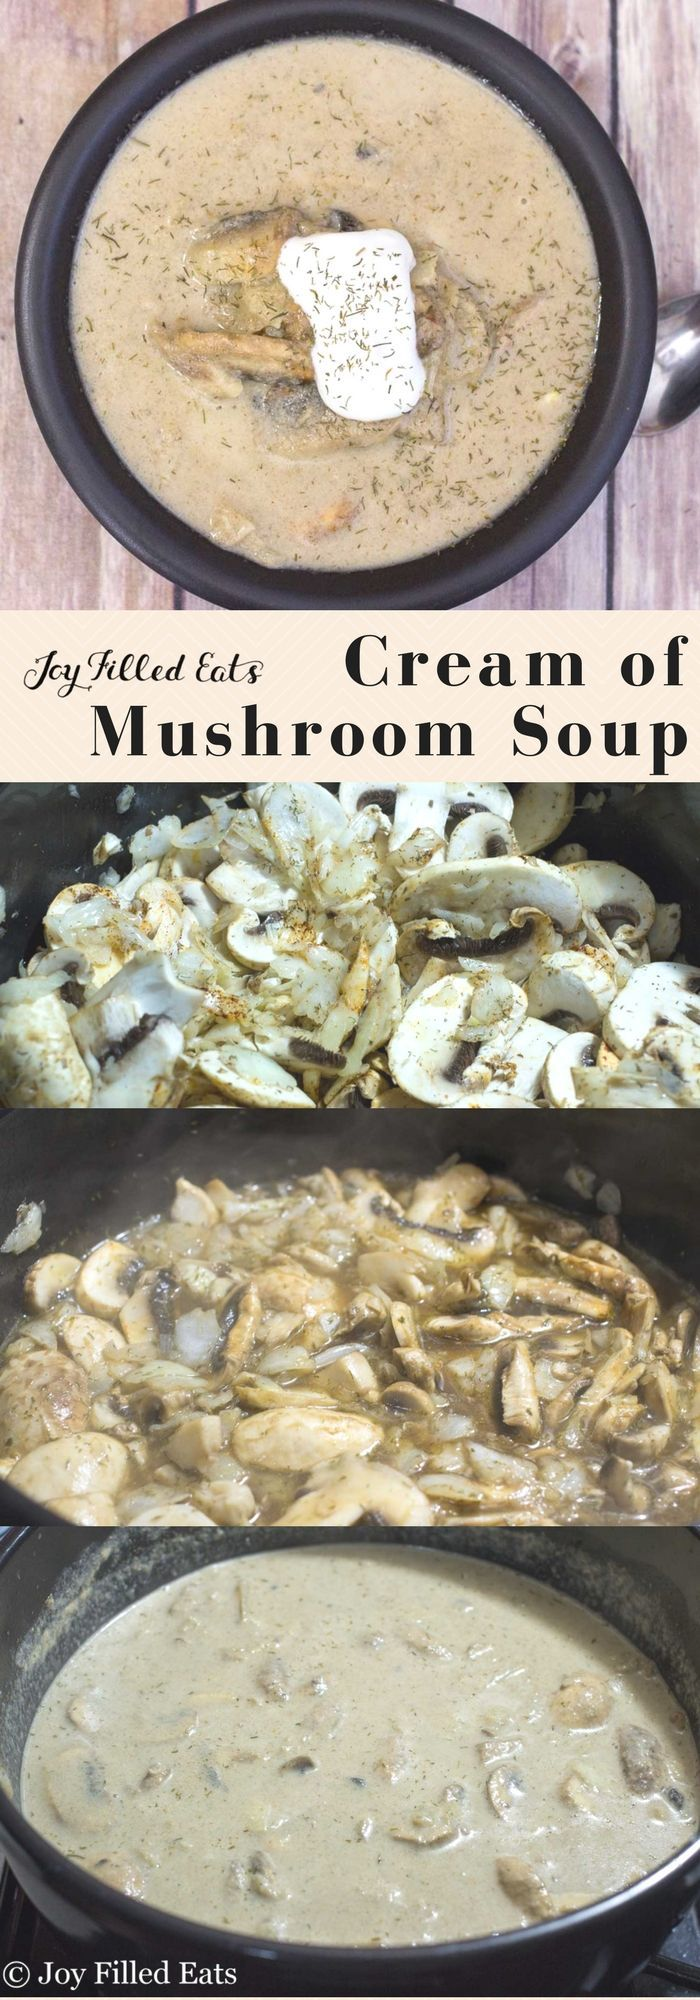 Cream of Mushroom Soup - Low Carb, Grain & Gluten Free, THM S - This mushroom soup is rich and creamy with a hint of dill and the tang of Greek yogurt. It is the perfect first course to a nice dinner or is a great entree all on its own.   via @joyfilledeats